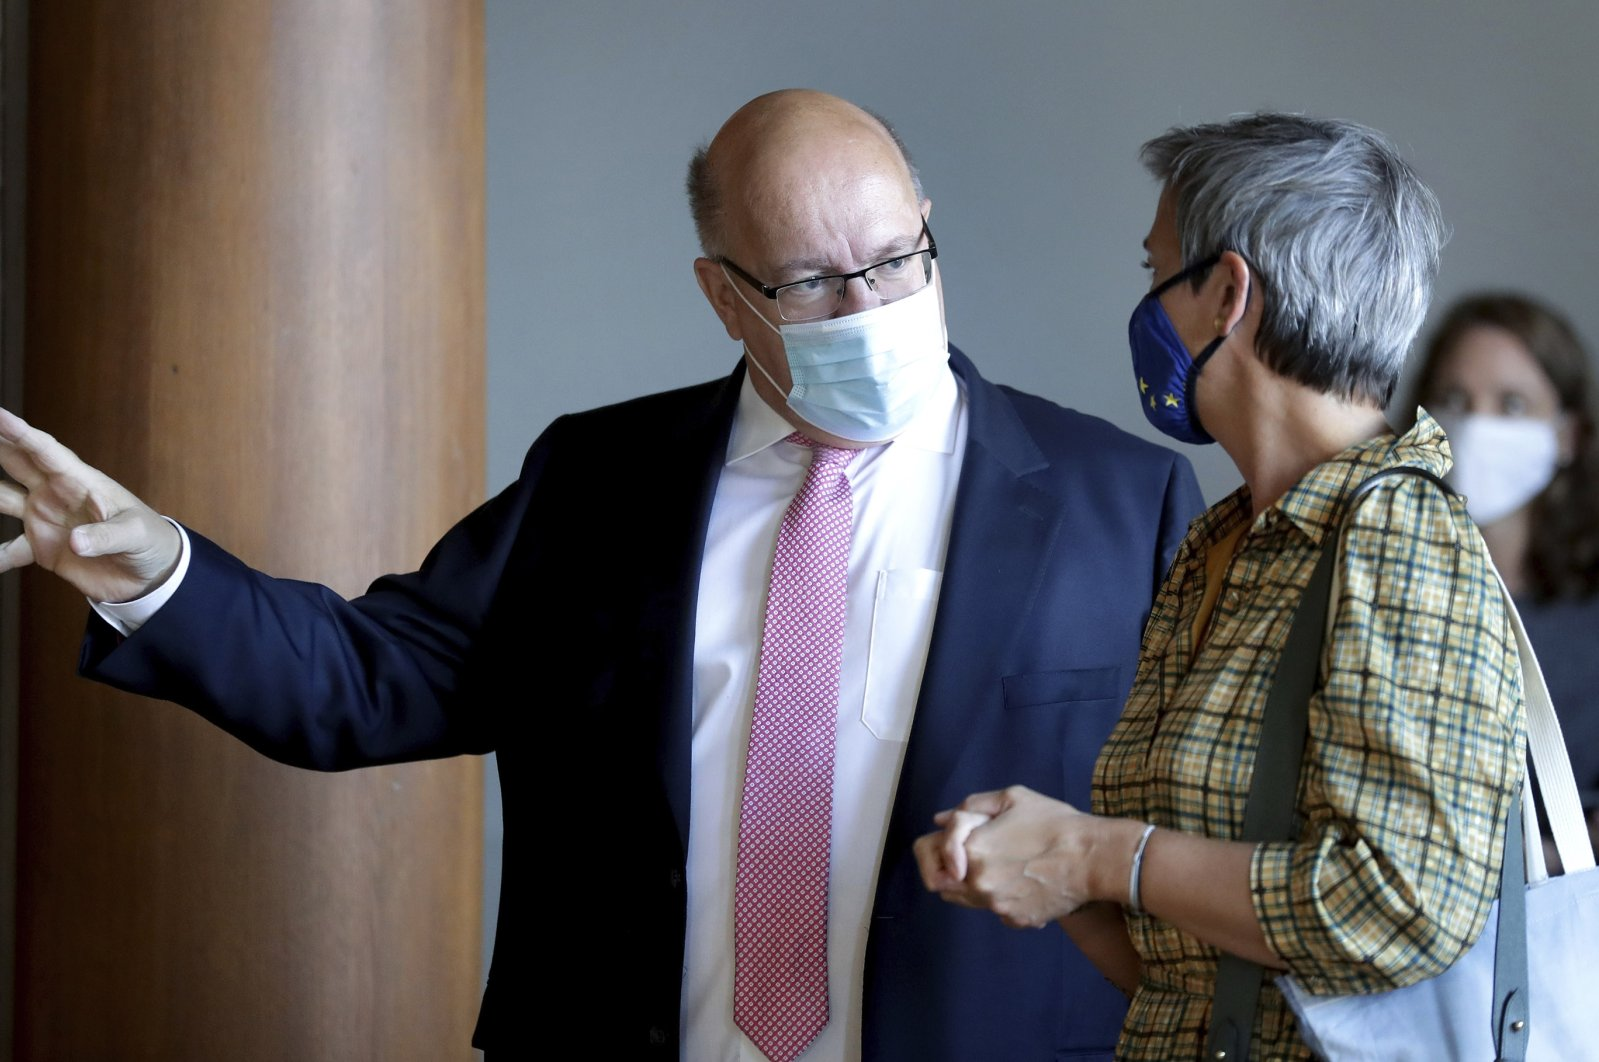 """German Economy Minister Peter Altmaier (L) gestures as he welcomes Executive Vice-President of the European Commission Margrethe Vestager (R) for the """"European Competition Day"""" at the German Economy Ministry in Berlin, Germany, Sept. 7, 2020. (AP Photo)"""